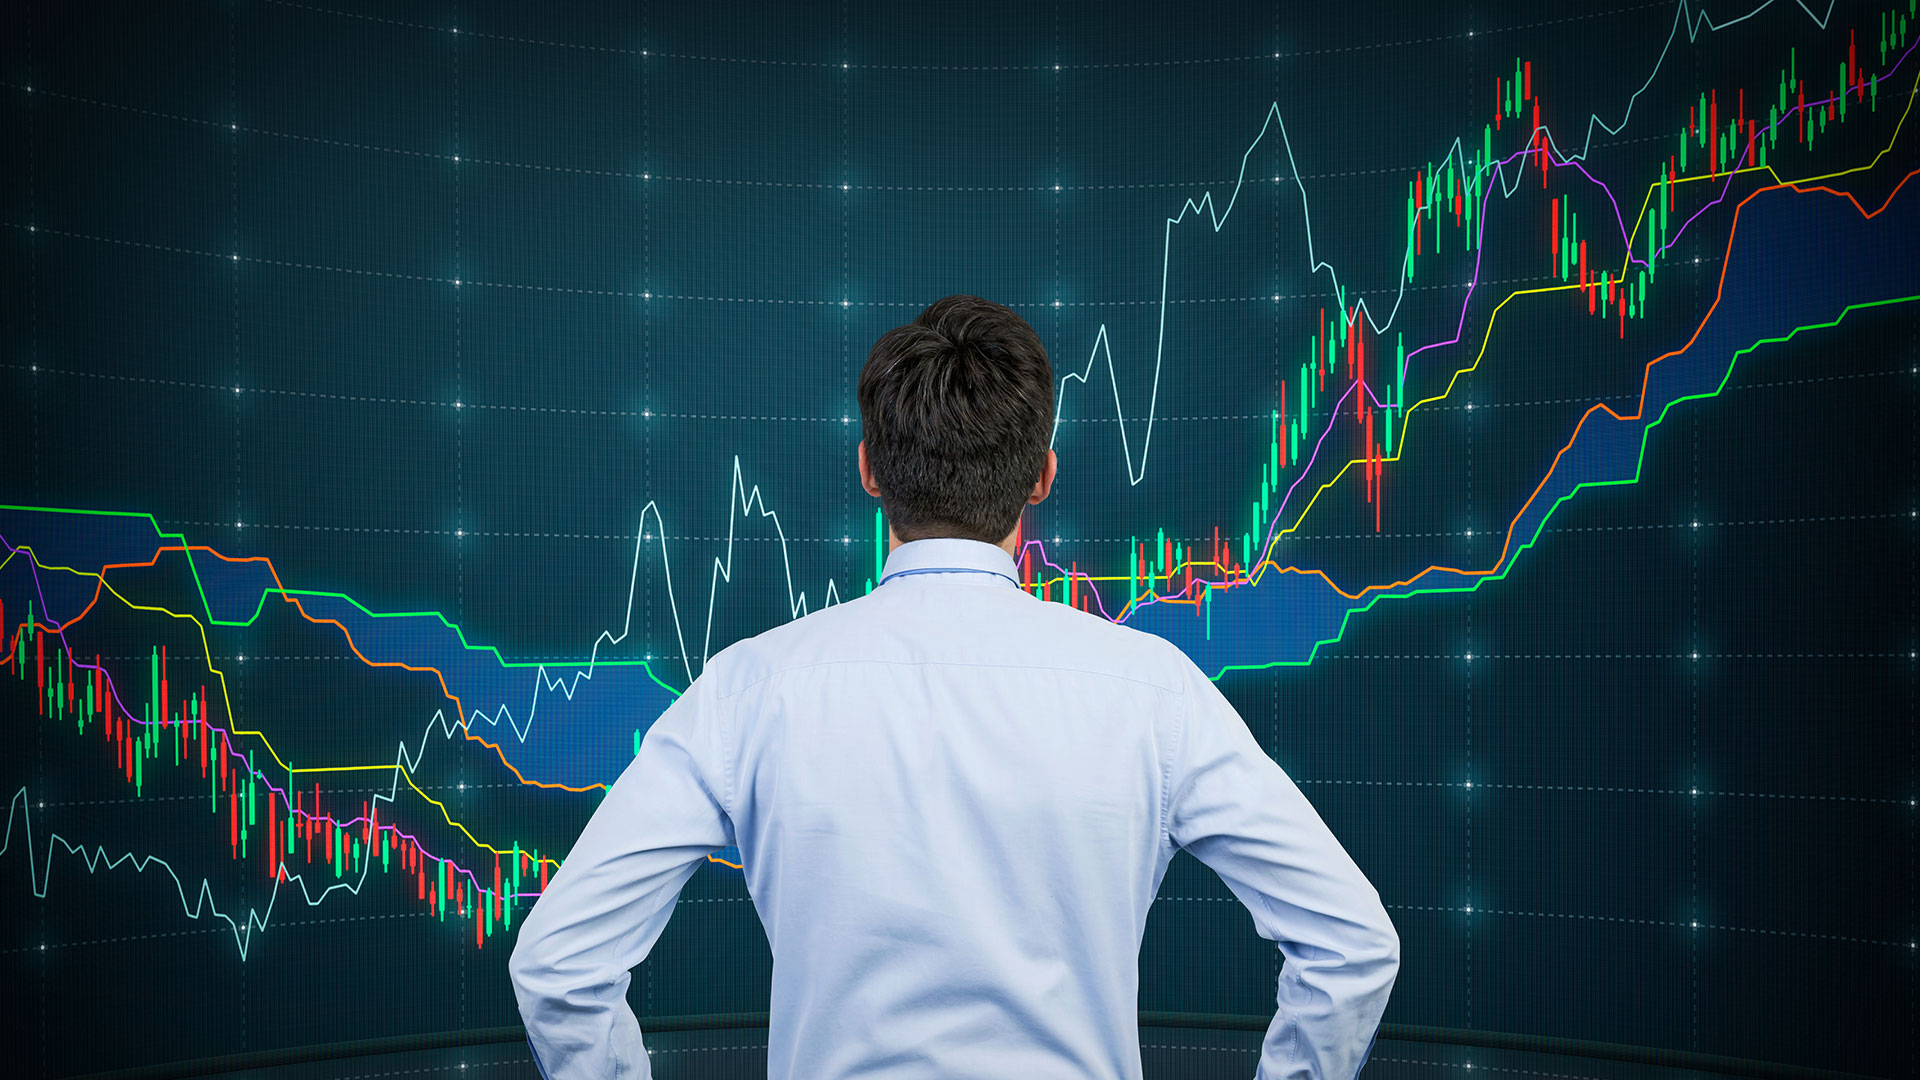 Research Shows US Users Visit Cryptocurrency Exchanges 22 Million Times Each Month